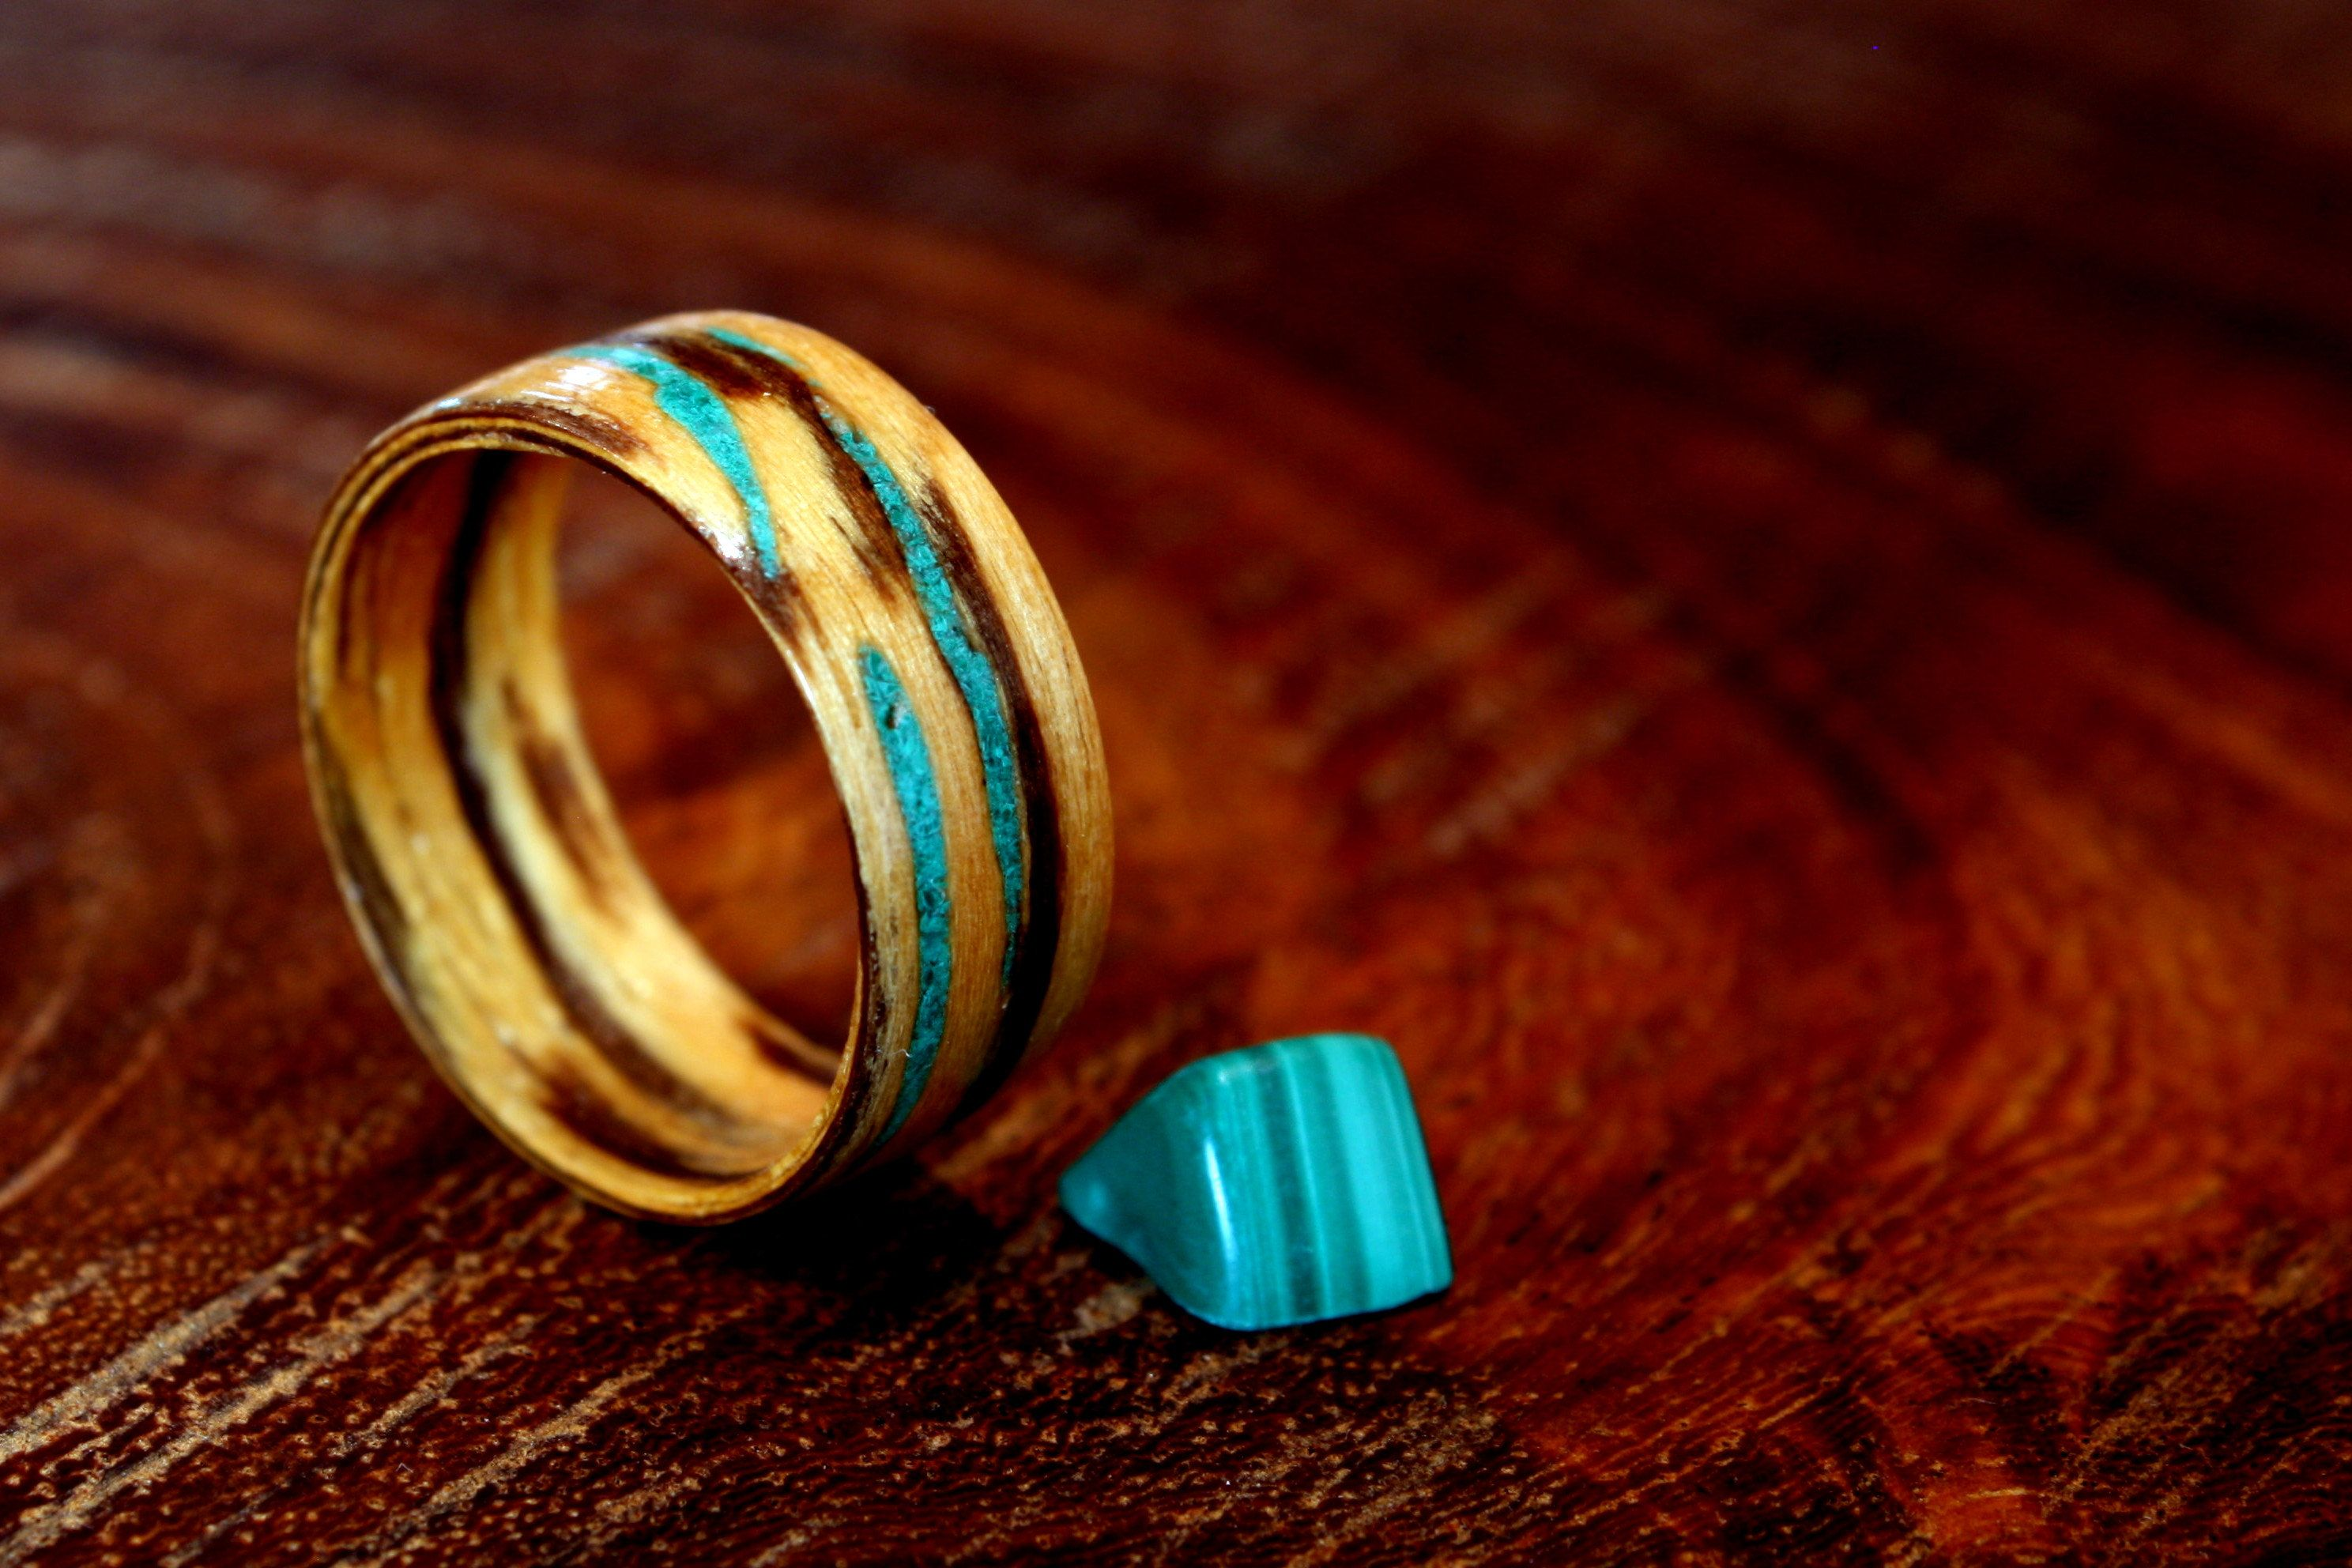 zebra malachite ring and pin inlay wood stone rings with wedding woods abalone